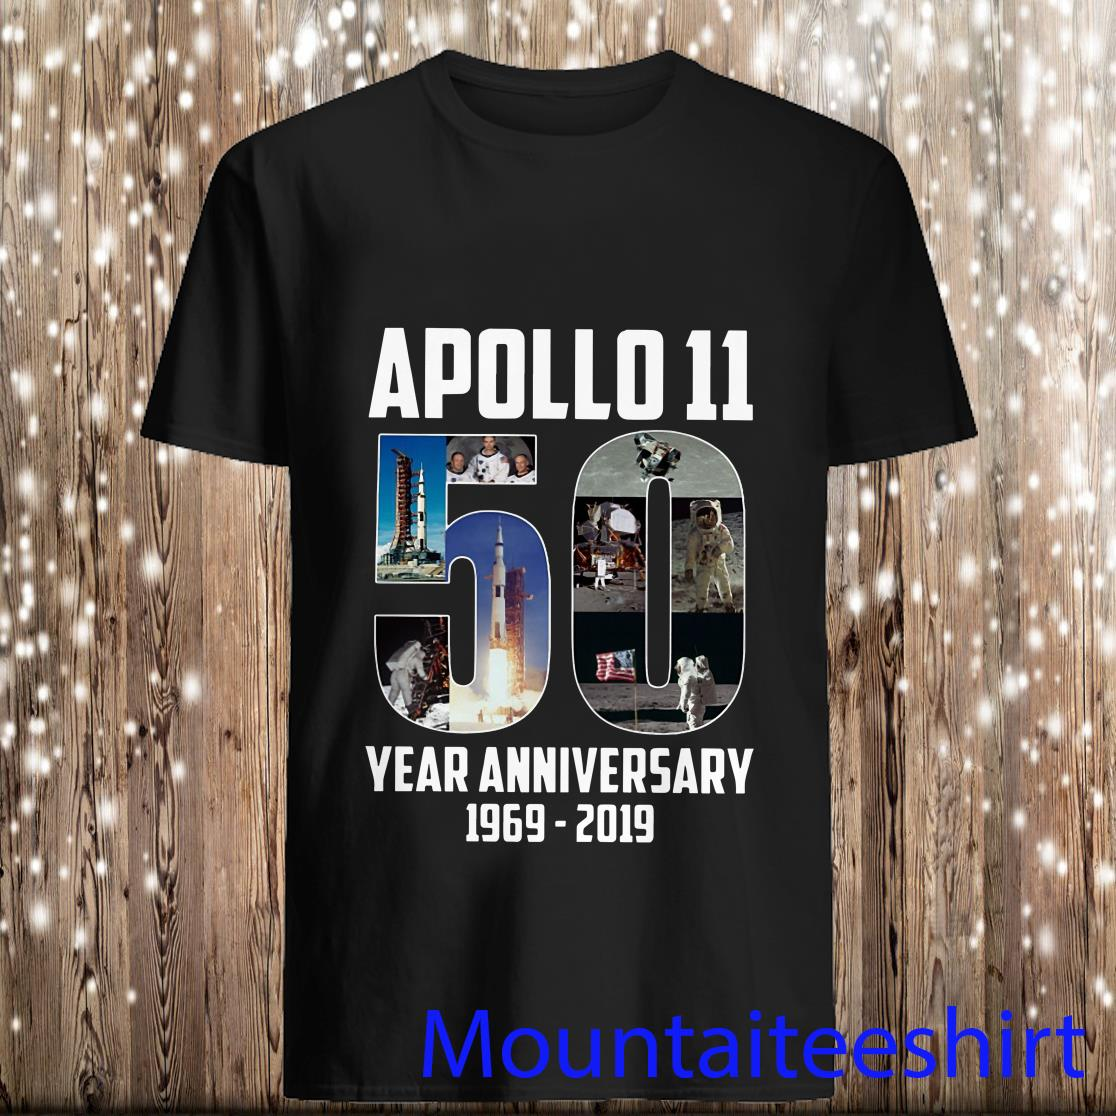 Apollo 11 50th Year Anniversary 1969-2019 Shirt